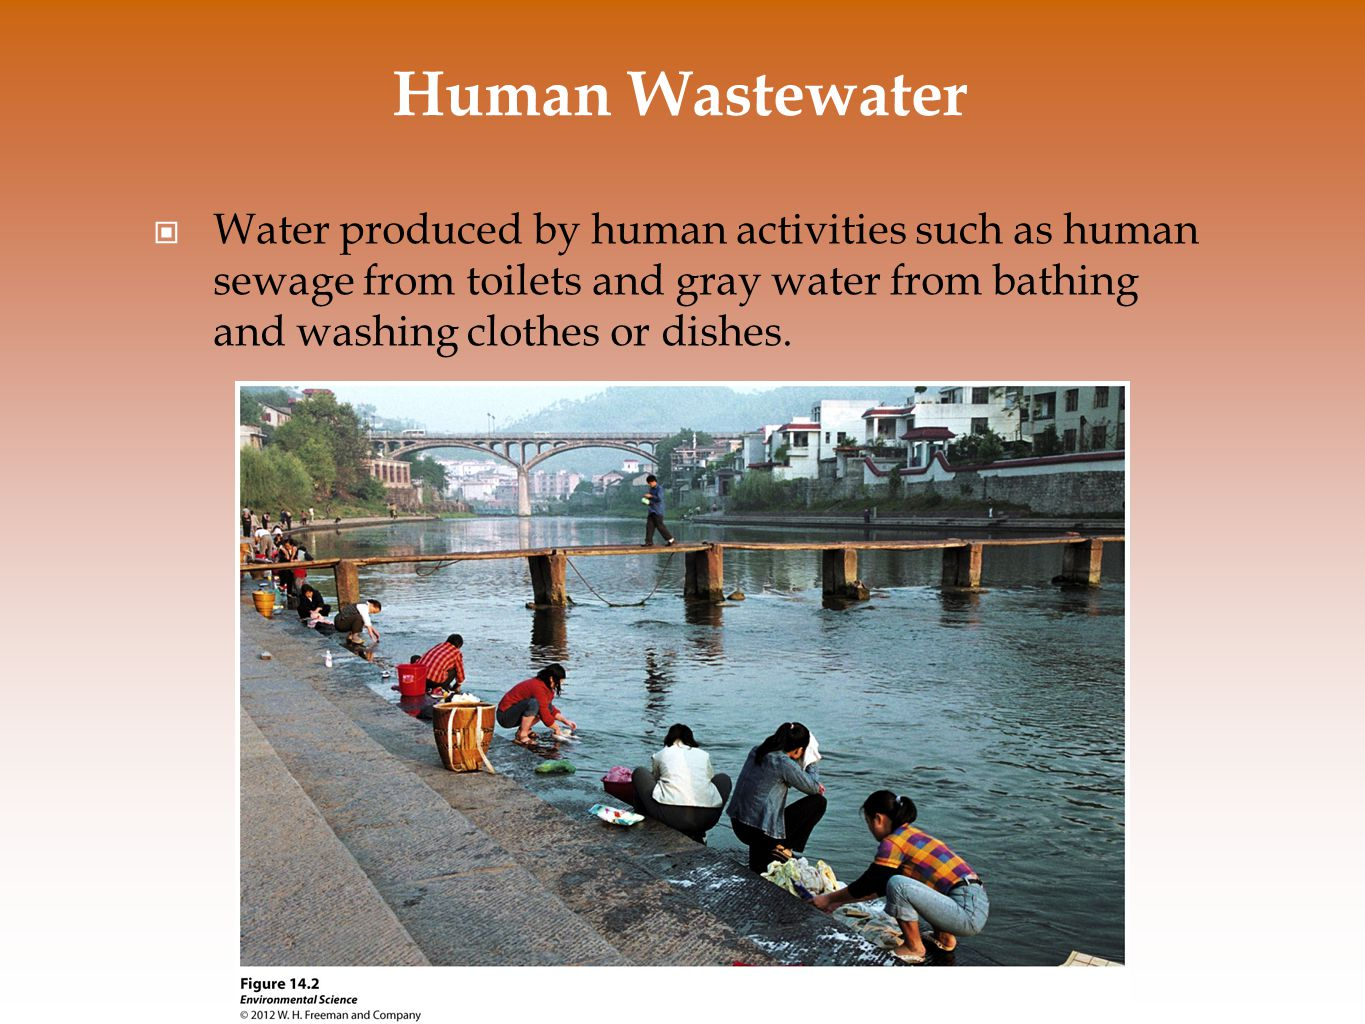 Three reasons scientists are concerned about human wastewater: Oxygen-demanding wastes like bacteria that put a large demand for oxygen in the water Nutrients that are released from wastewater decomposition can make the water more fertile causing eutrophication Wastewater can carry a wide variety of disease- causing organisms.